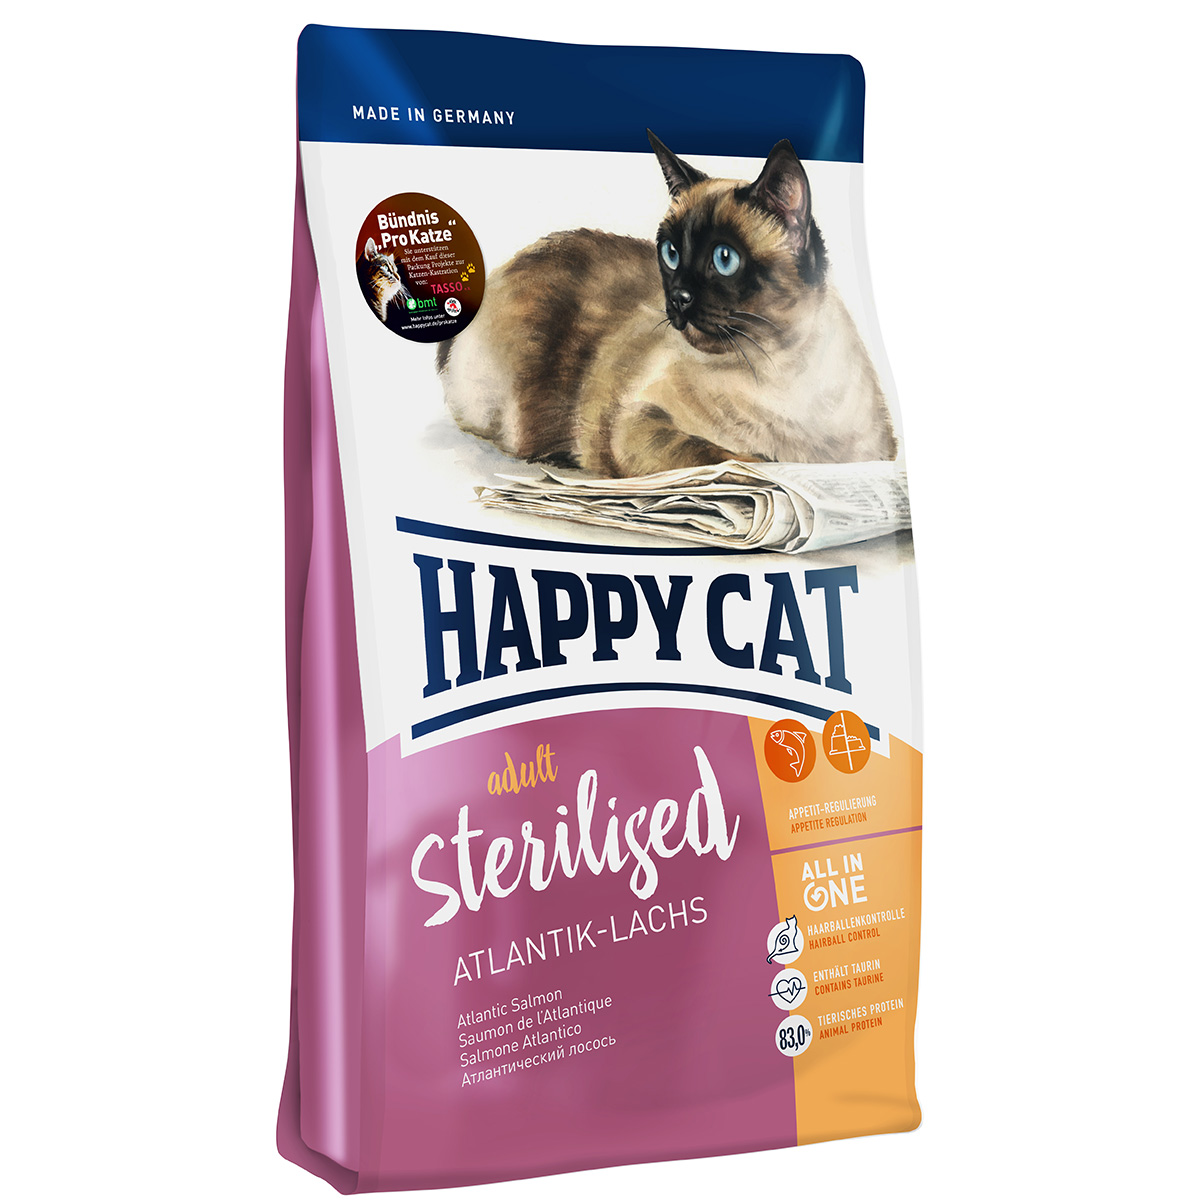 220755 1 happy cat sterilised atlantik